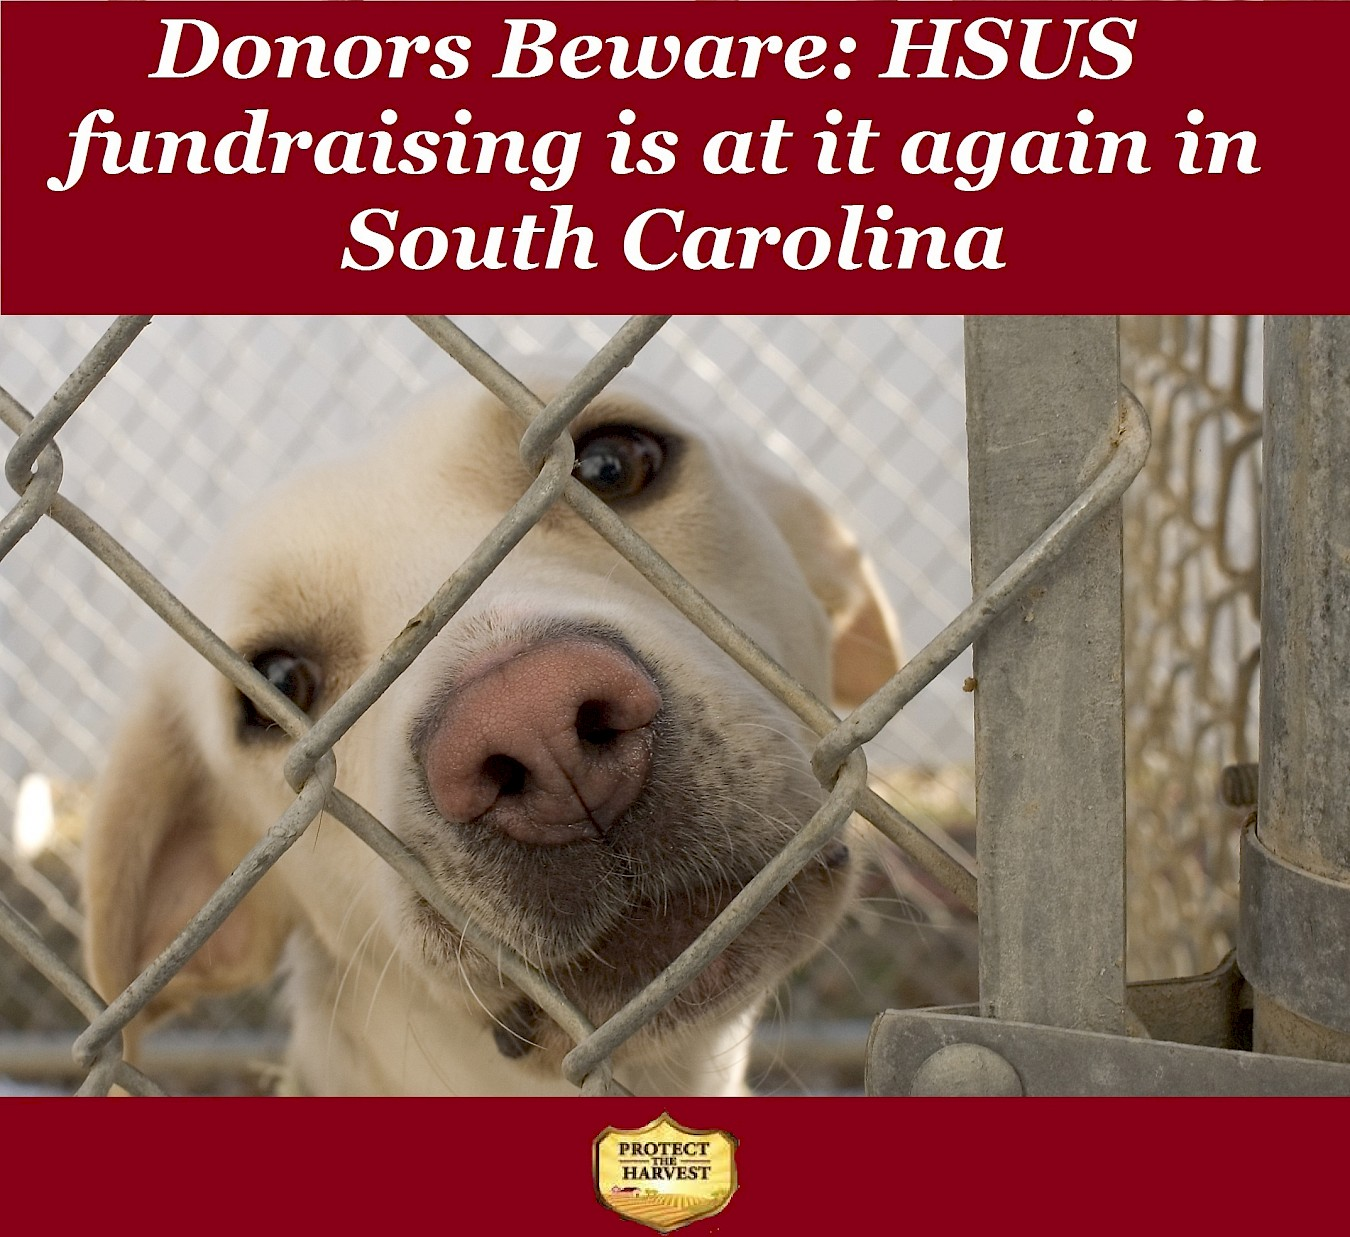 Be Wary of HSUS Fundraising in South Carolina